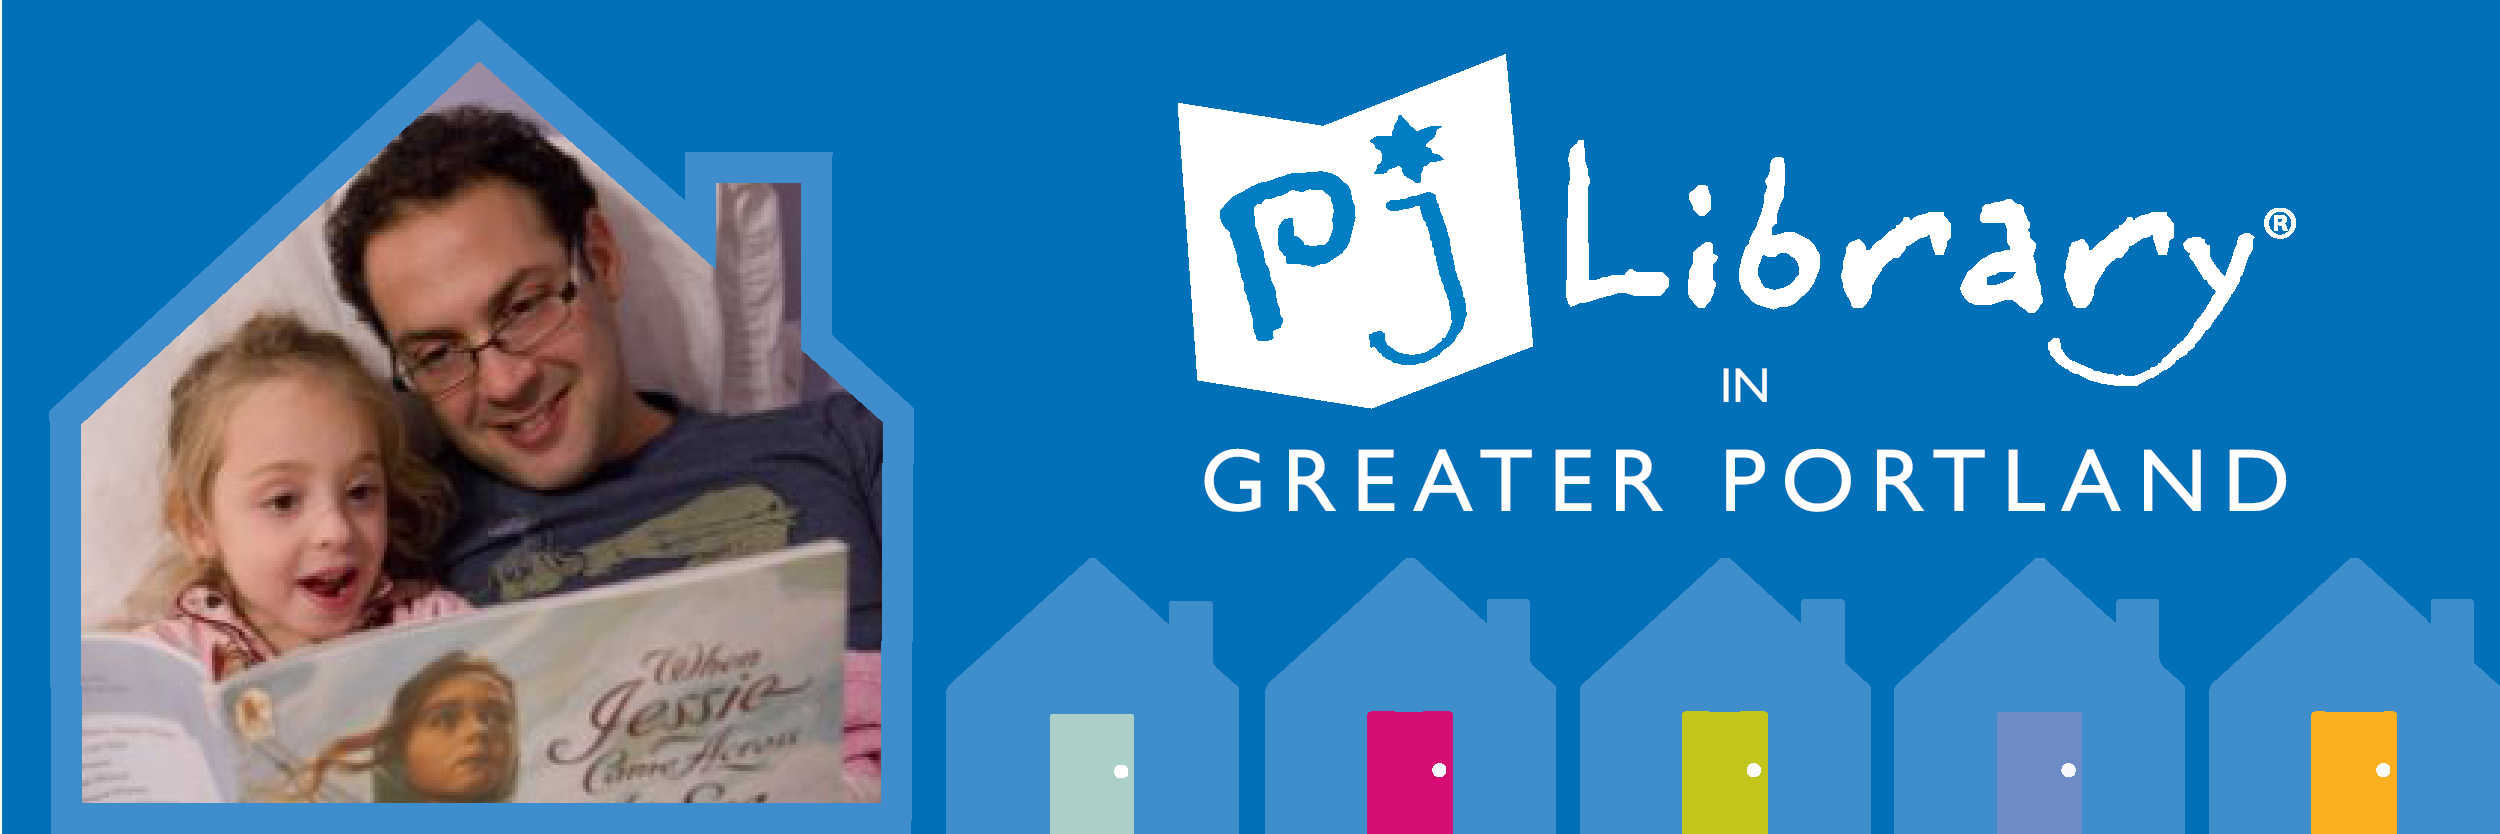 PJ Library Portland News for Families